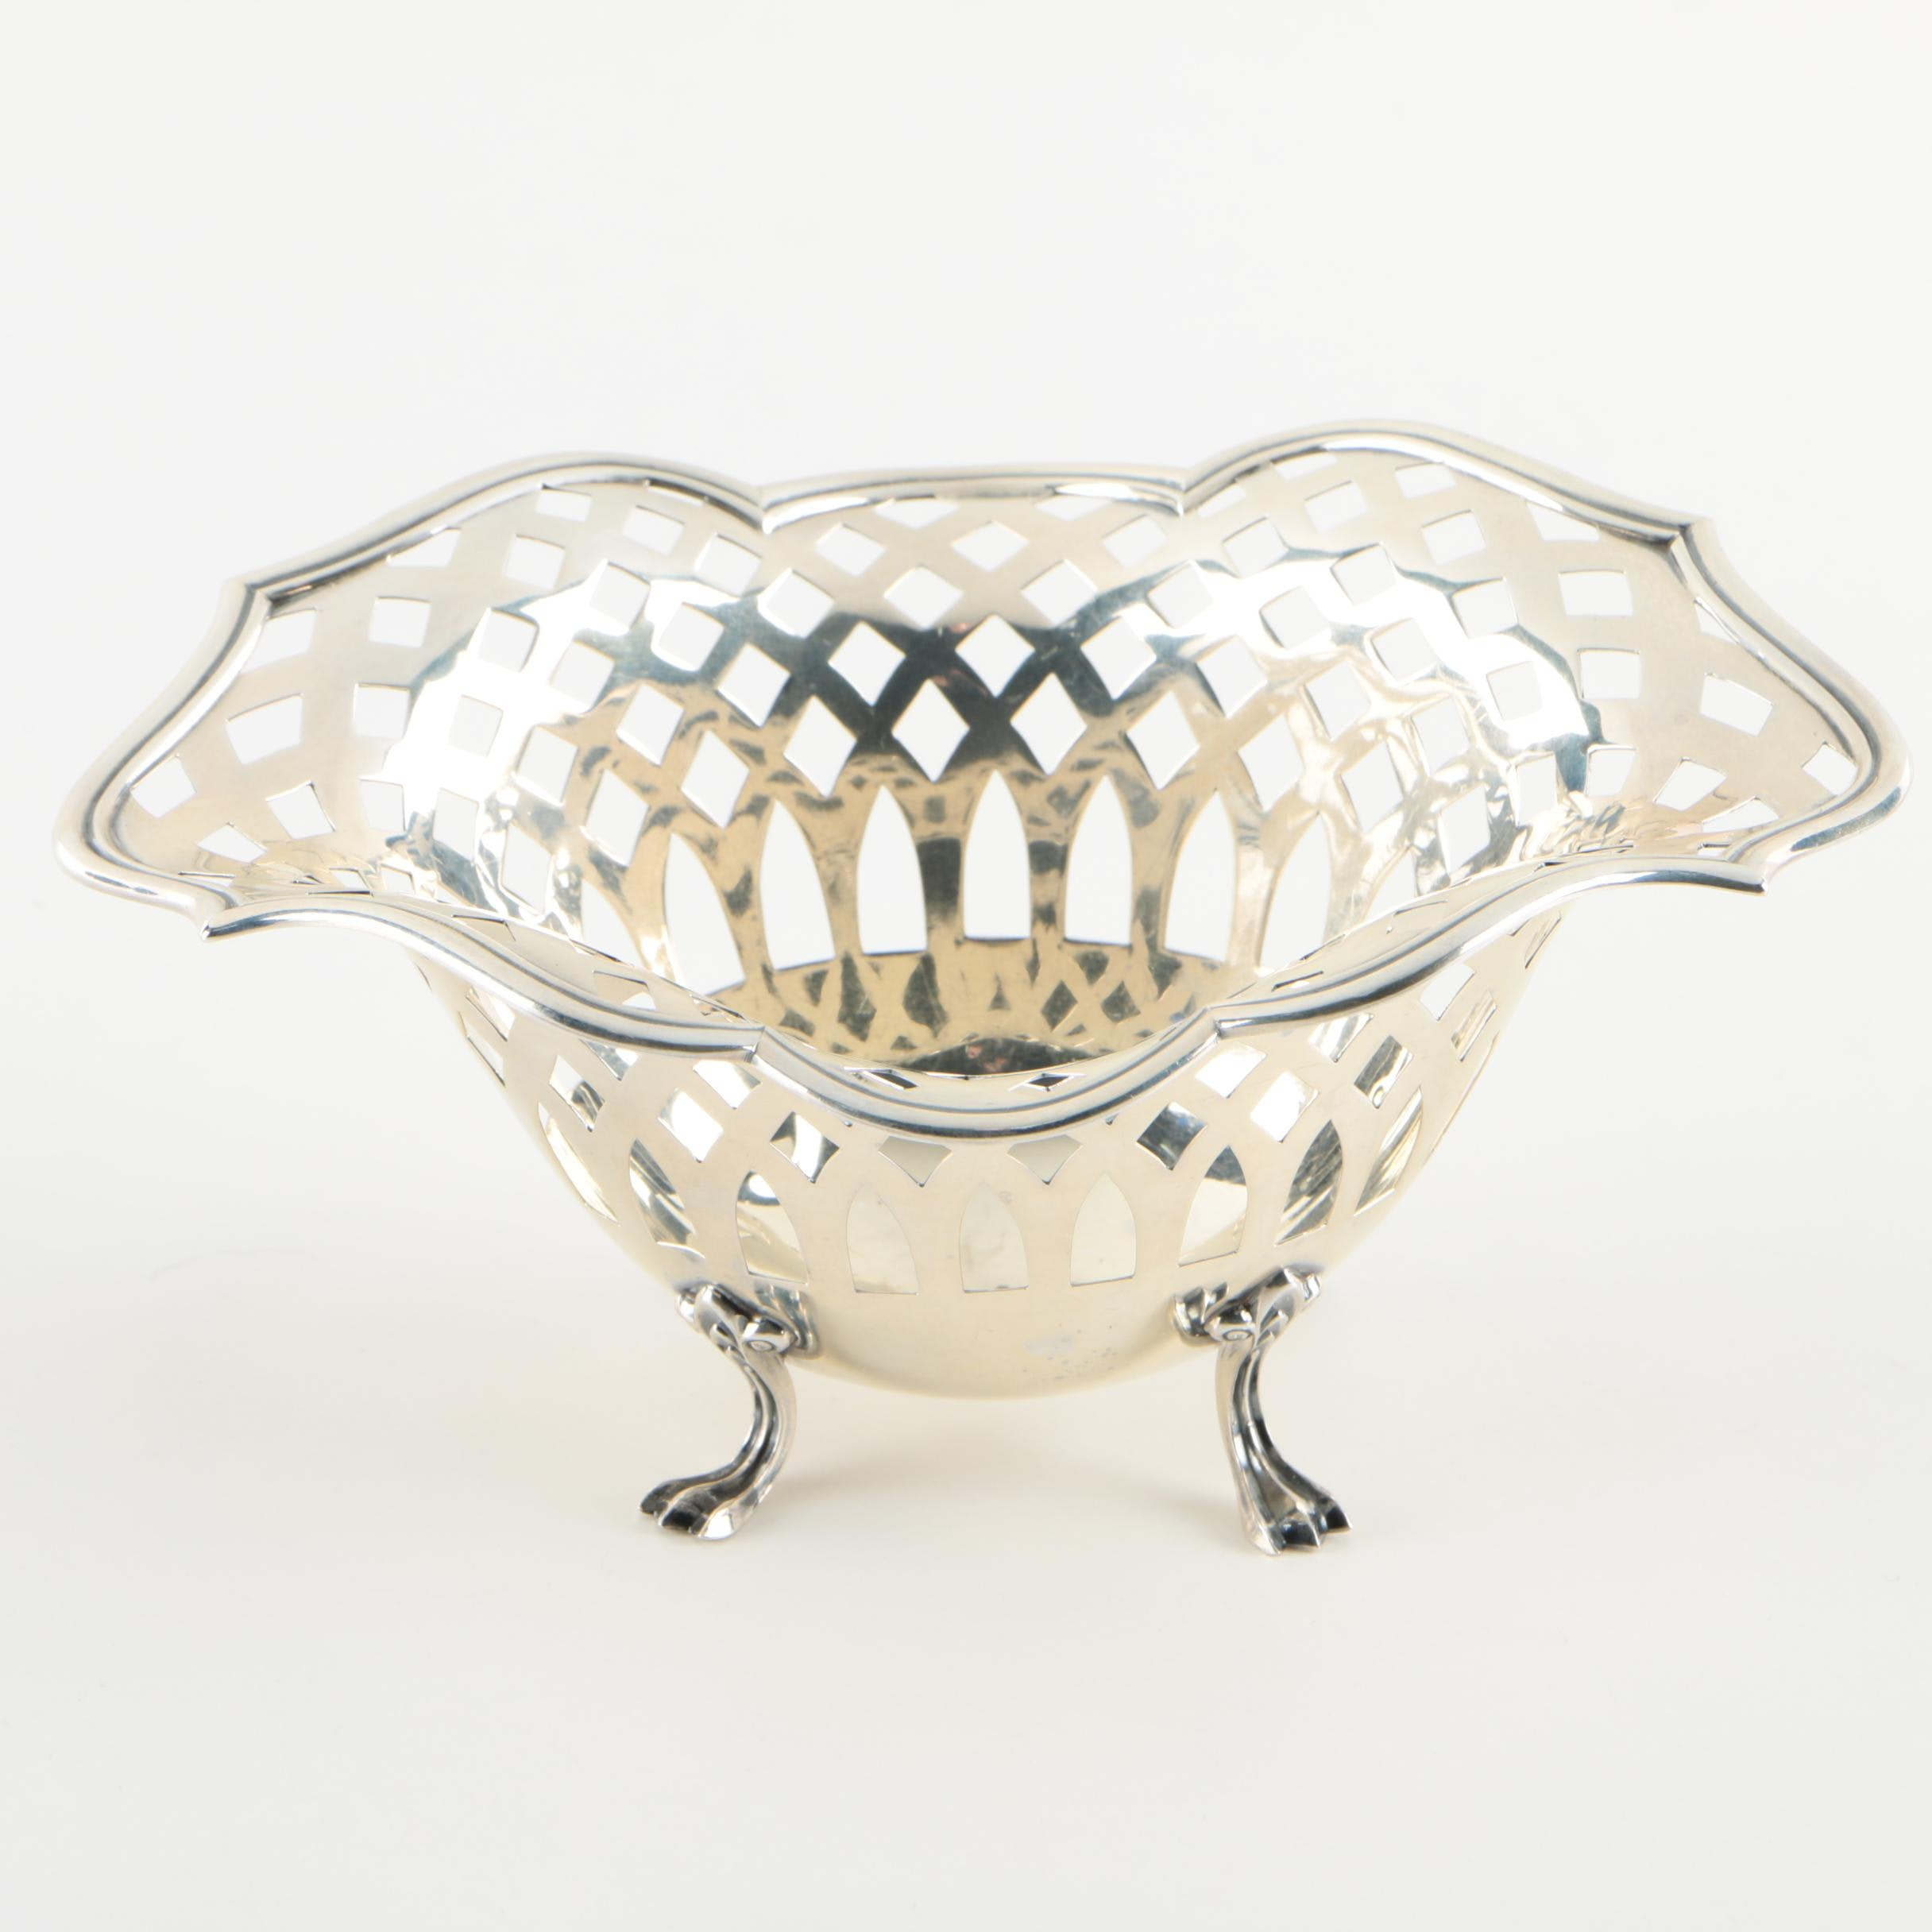 Towle Sterling Silver Pierced Bowl, Mid-Century